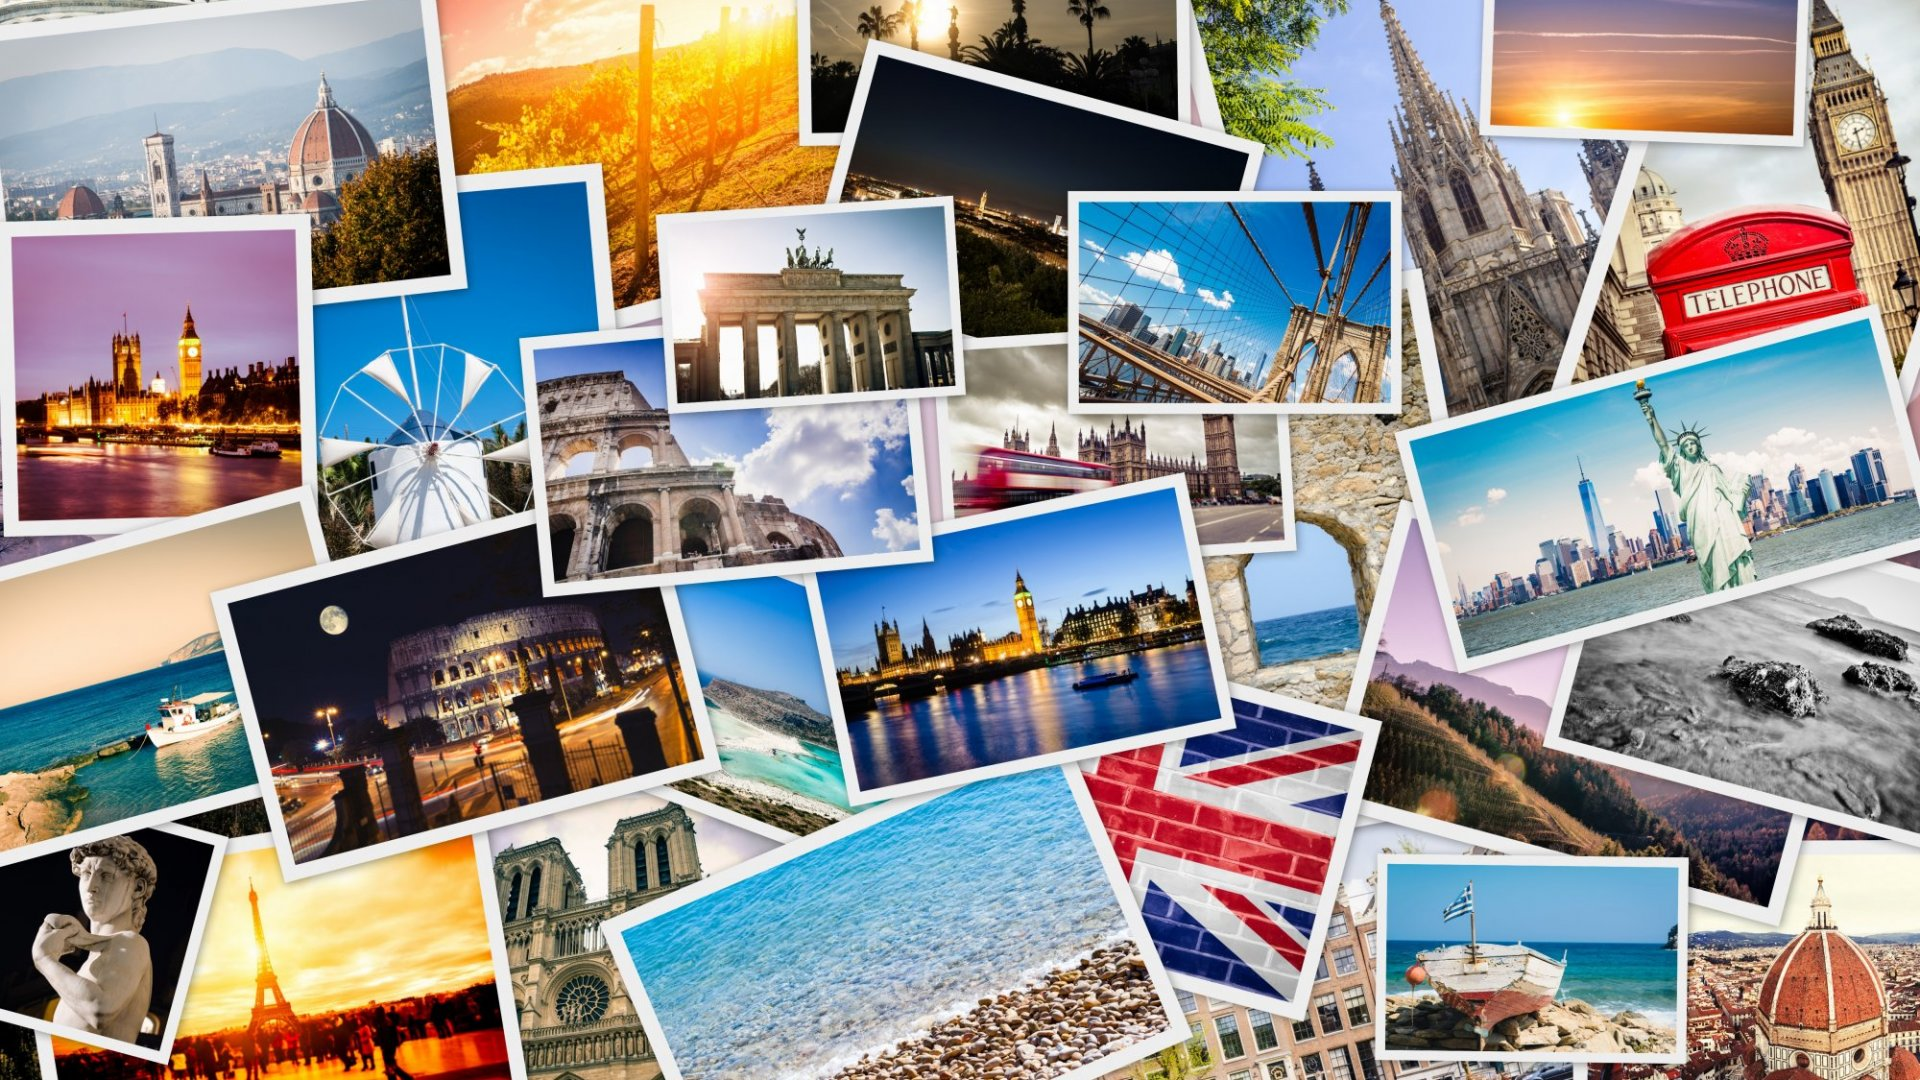 Study: International Travel May Destroy Your Moral Compass